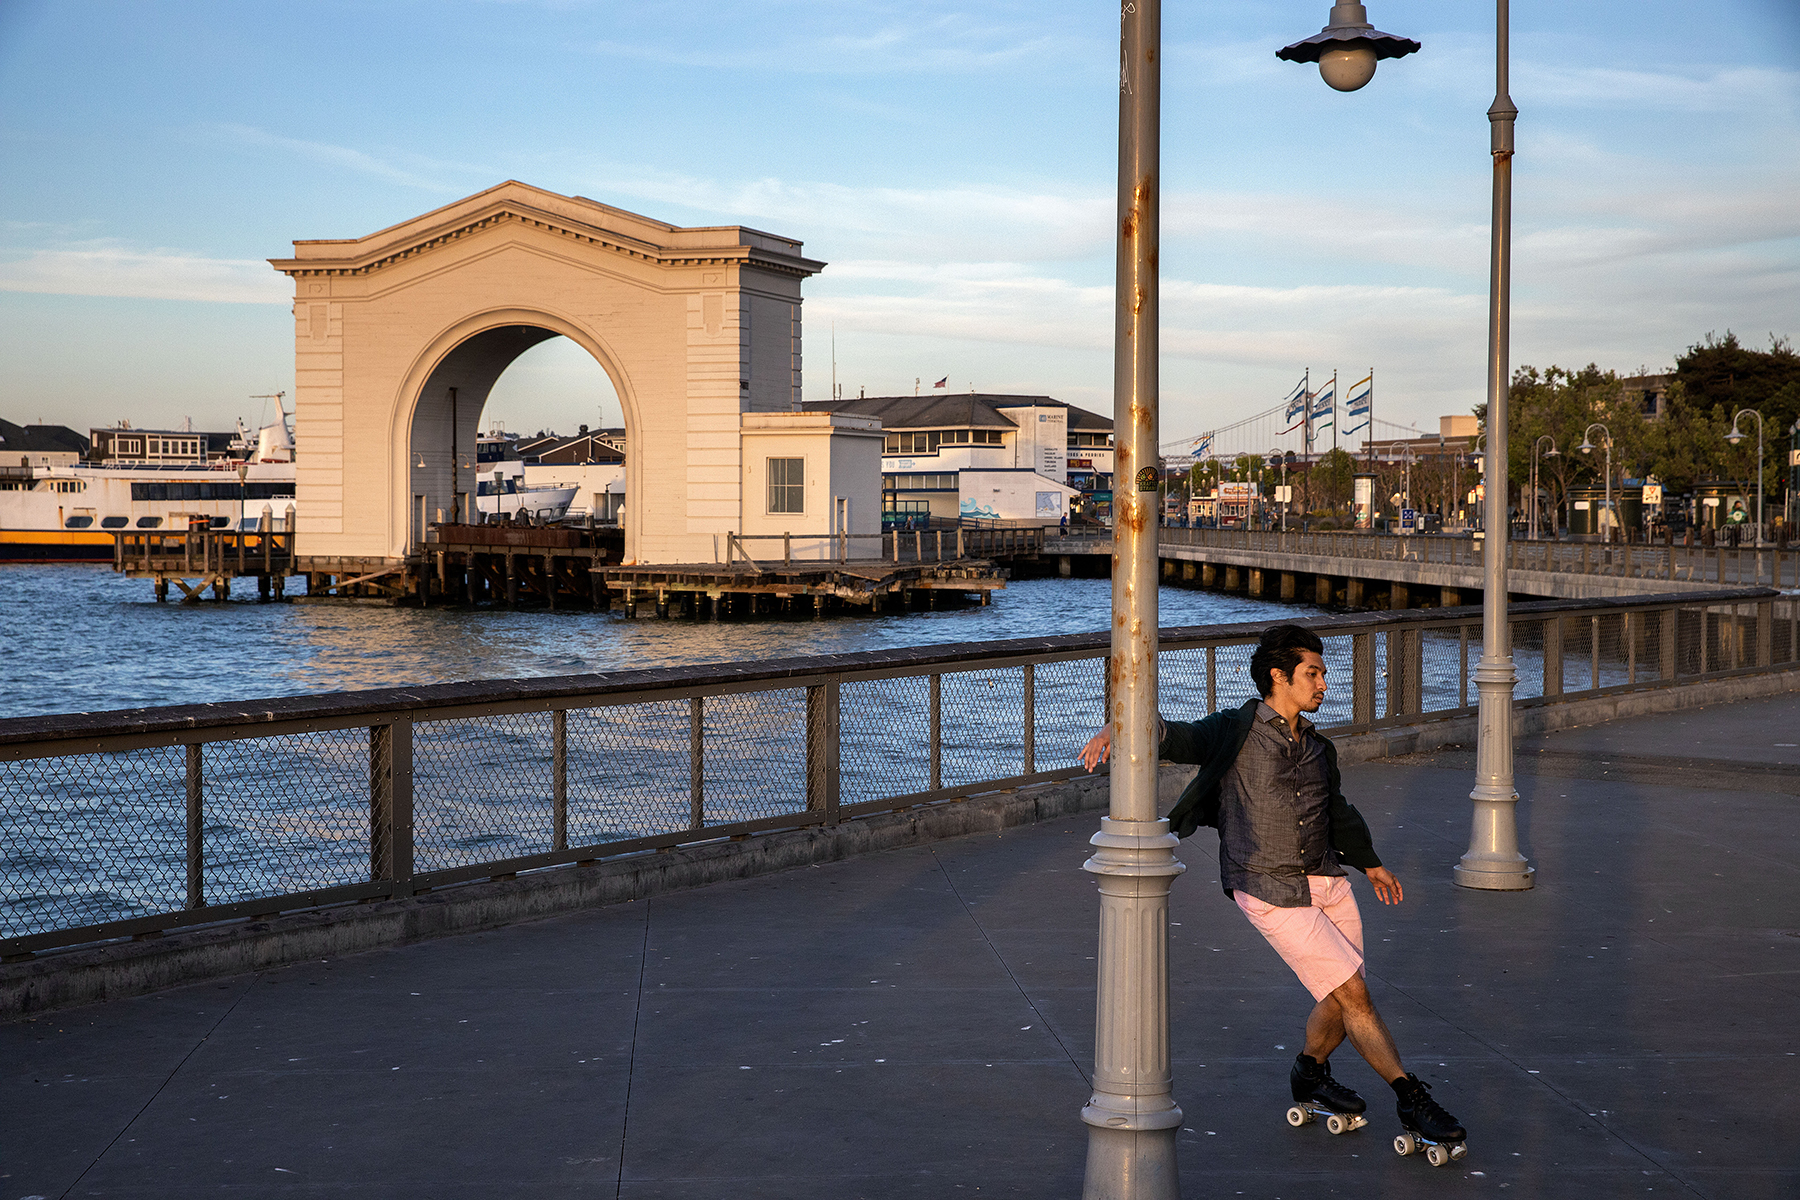 Ali White (pink outfit/blue helmet) and Joshua Ugarte (pink shorts) roller skate in Fisherman's Wharf behind the closed Franciscan Crab Restaurant in San Francisco, Calif., on Friday, May 15, 2020. The city is still under shelter-in-place orders due to the Covid-19 virus, but residents are allowed outside for exercise and essential activities. White is a school teacher who took up roller skating only a few weeks ago to relax and Ugarte used to be a figure skater.